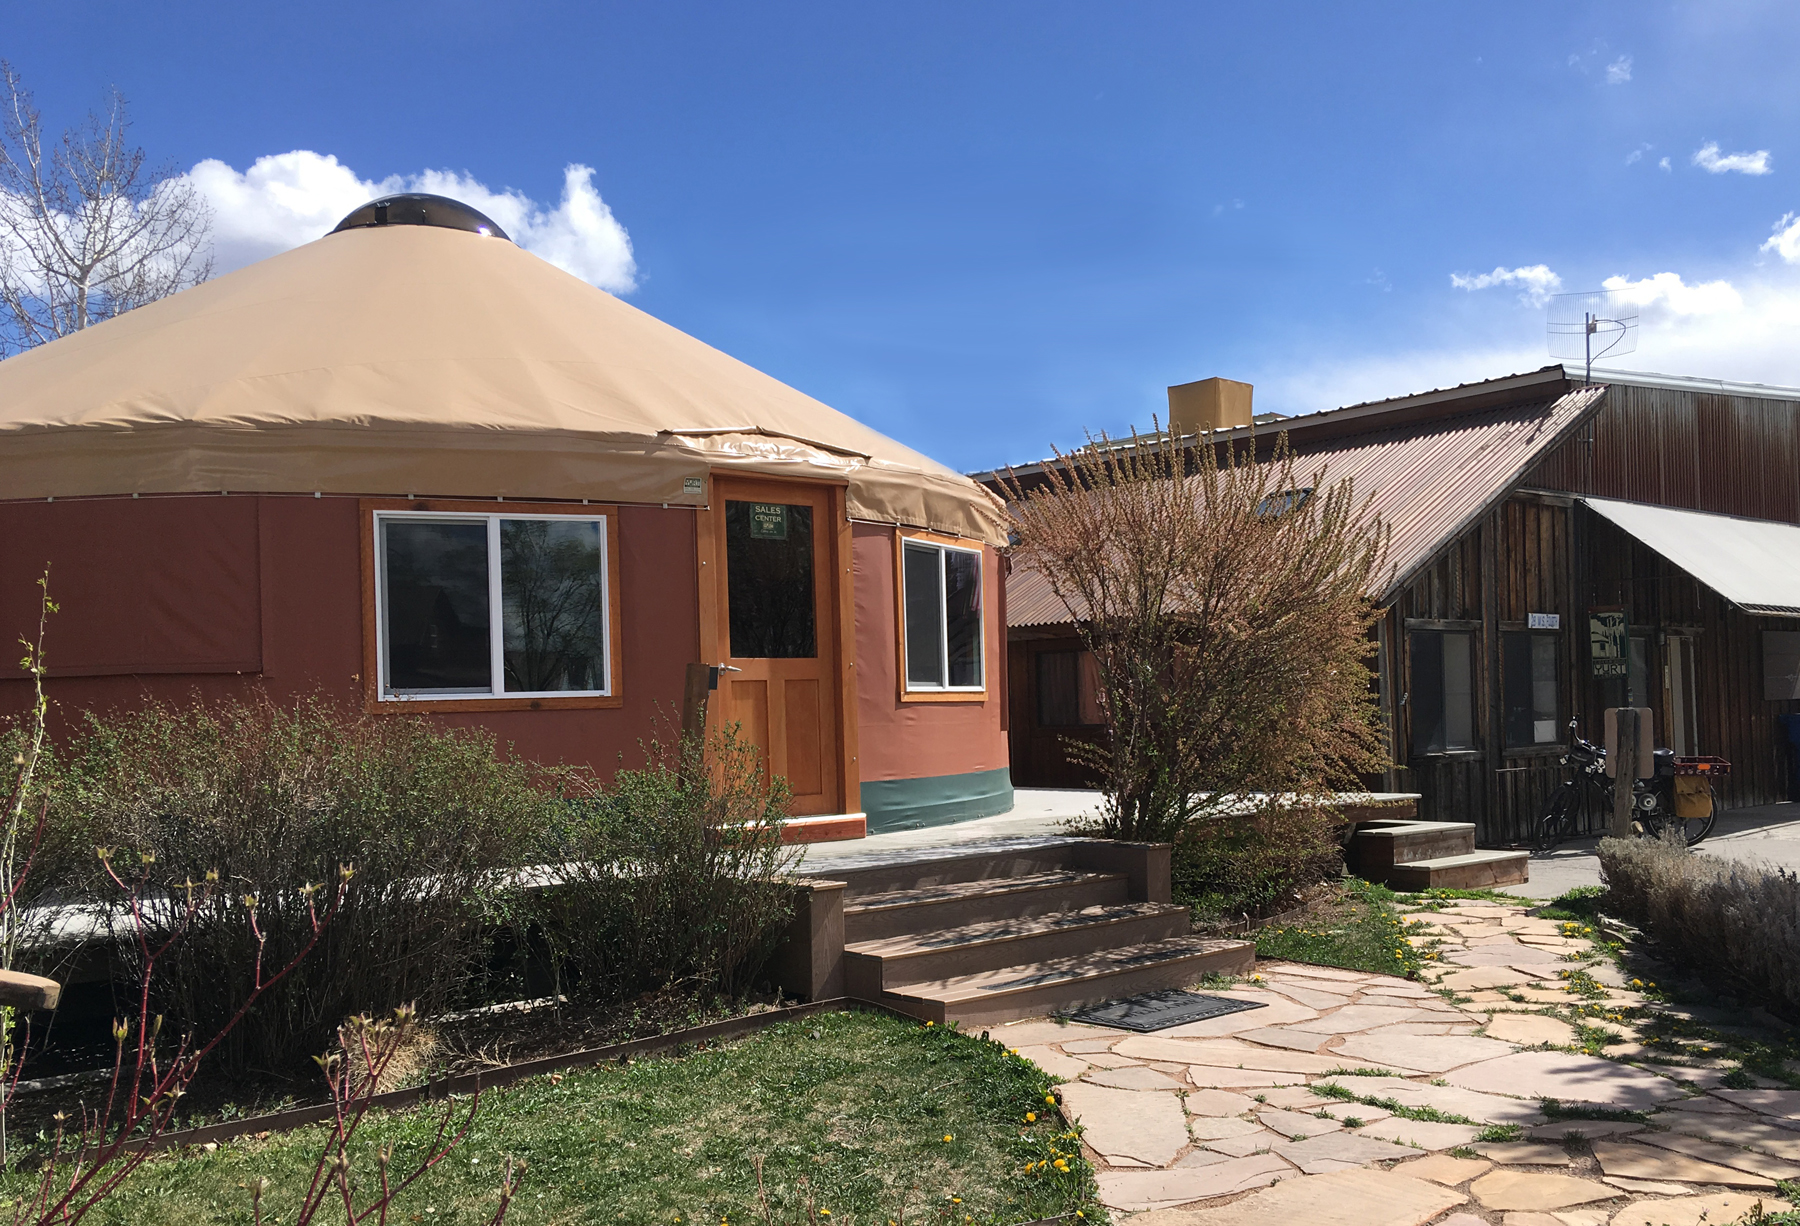 Colorado Yurt Company Montrose Virtual Chamber Of Commerce Find state of co homes_description_types_10_plu at the best price. colorado yurt company montrose